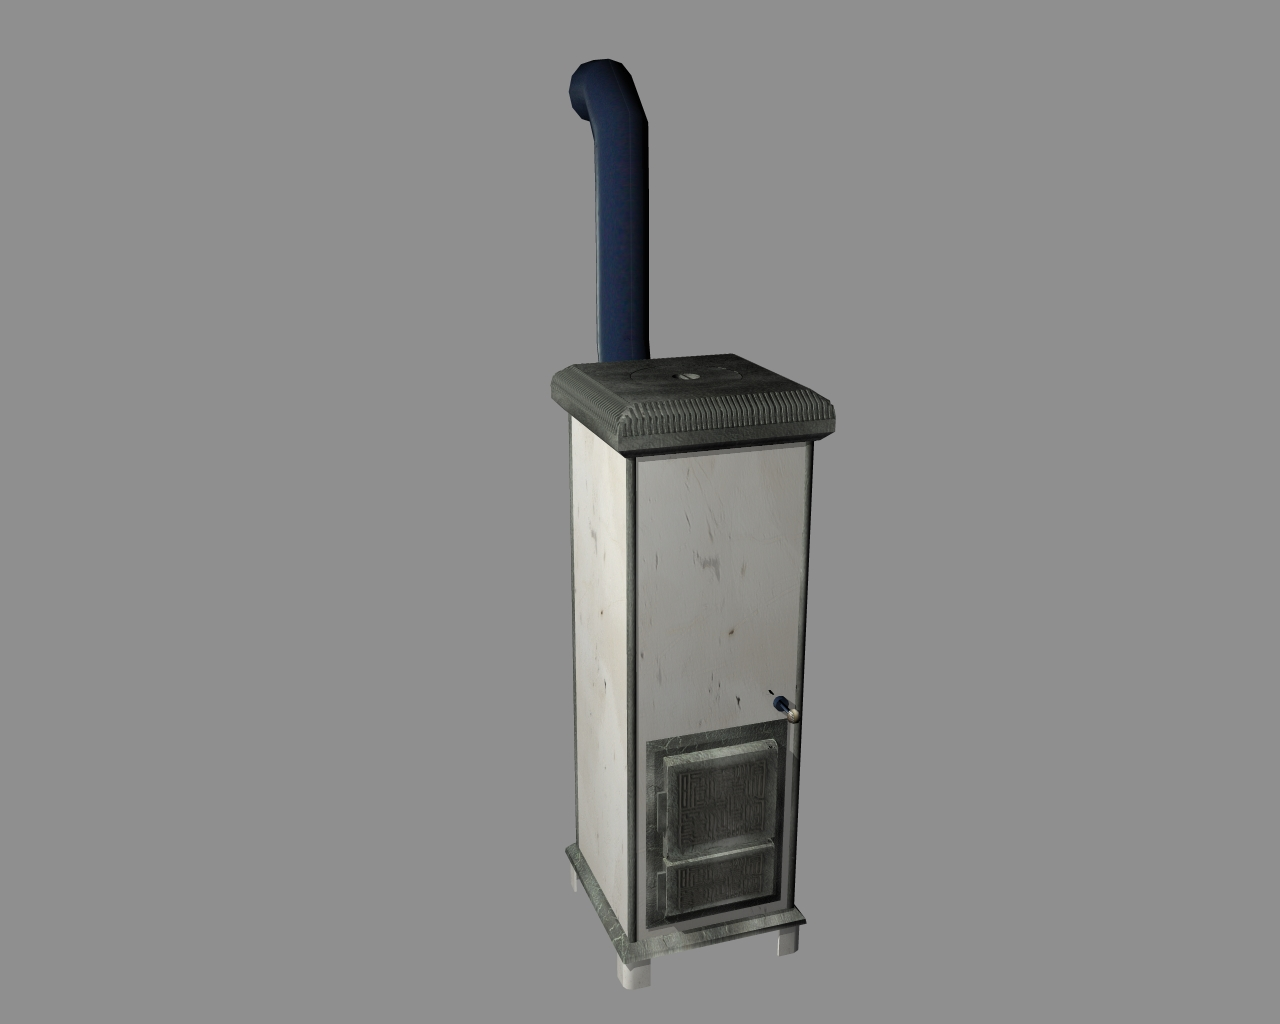 wood-burning stove 3d model 3ds 165893